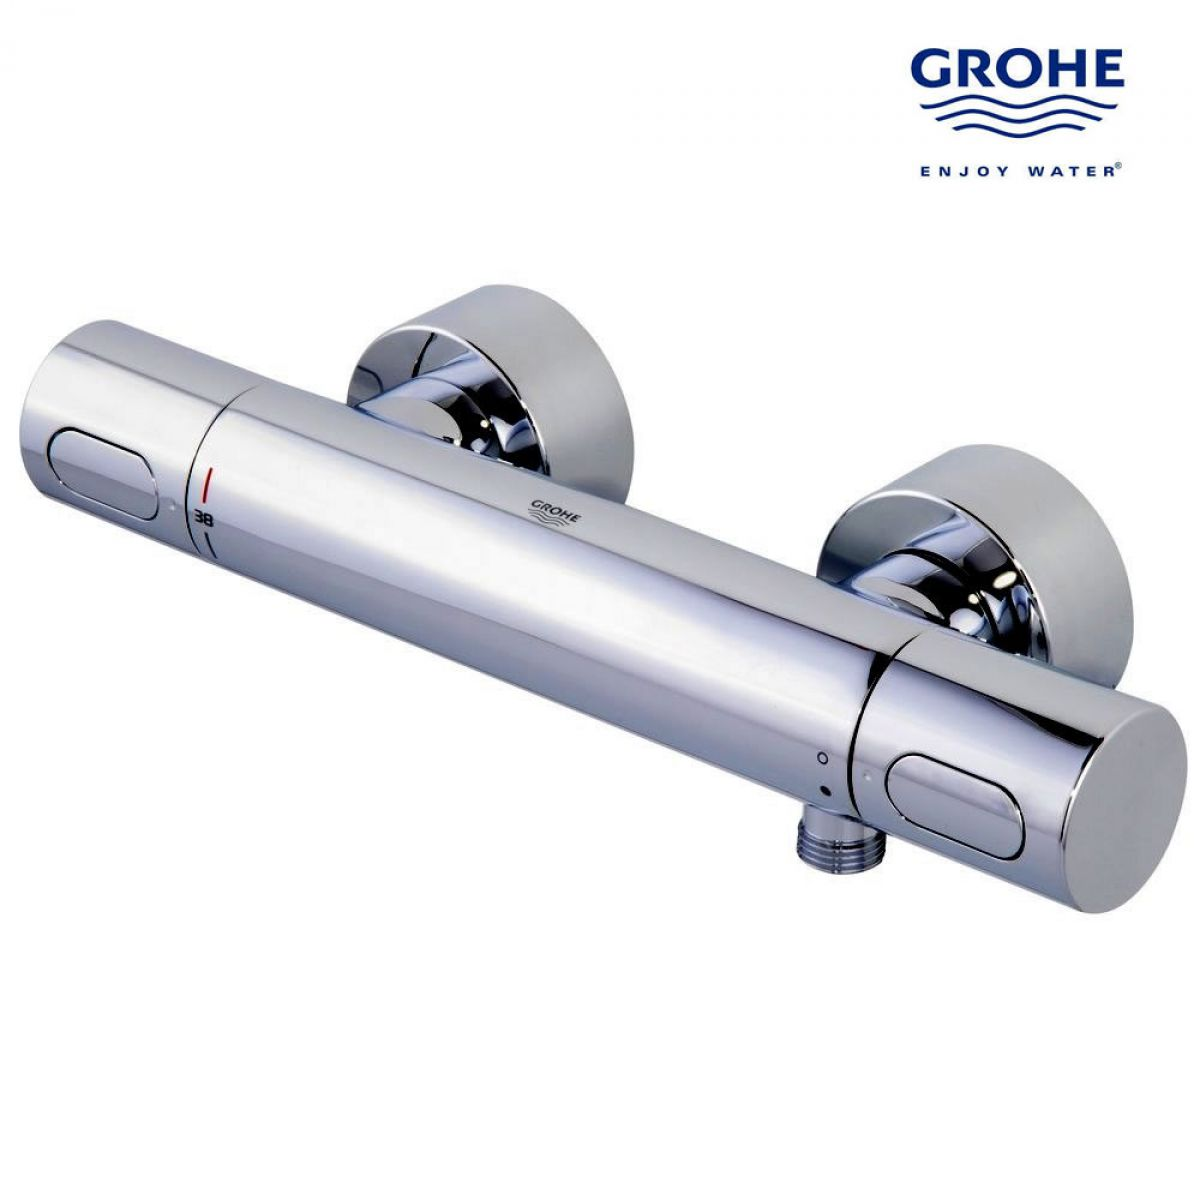 grohe 1000 thermostatic bath shower mixer. grohtherm 3000 cosmo thermostatic bath/shower mixer with ecobutton grohe 1000 bath shower t